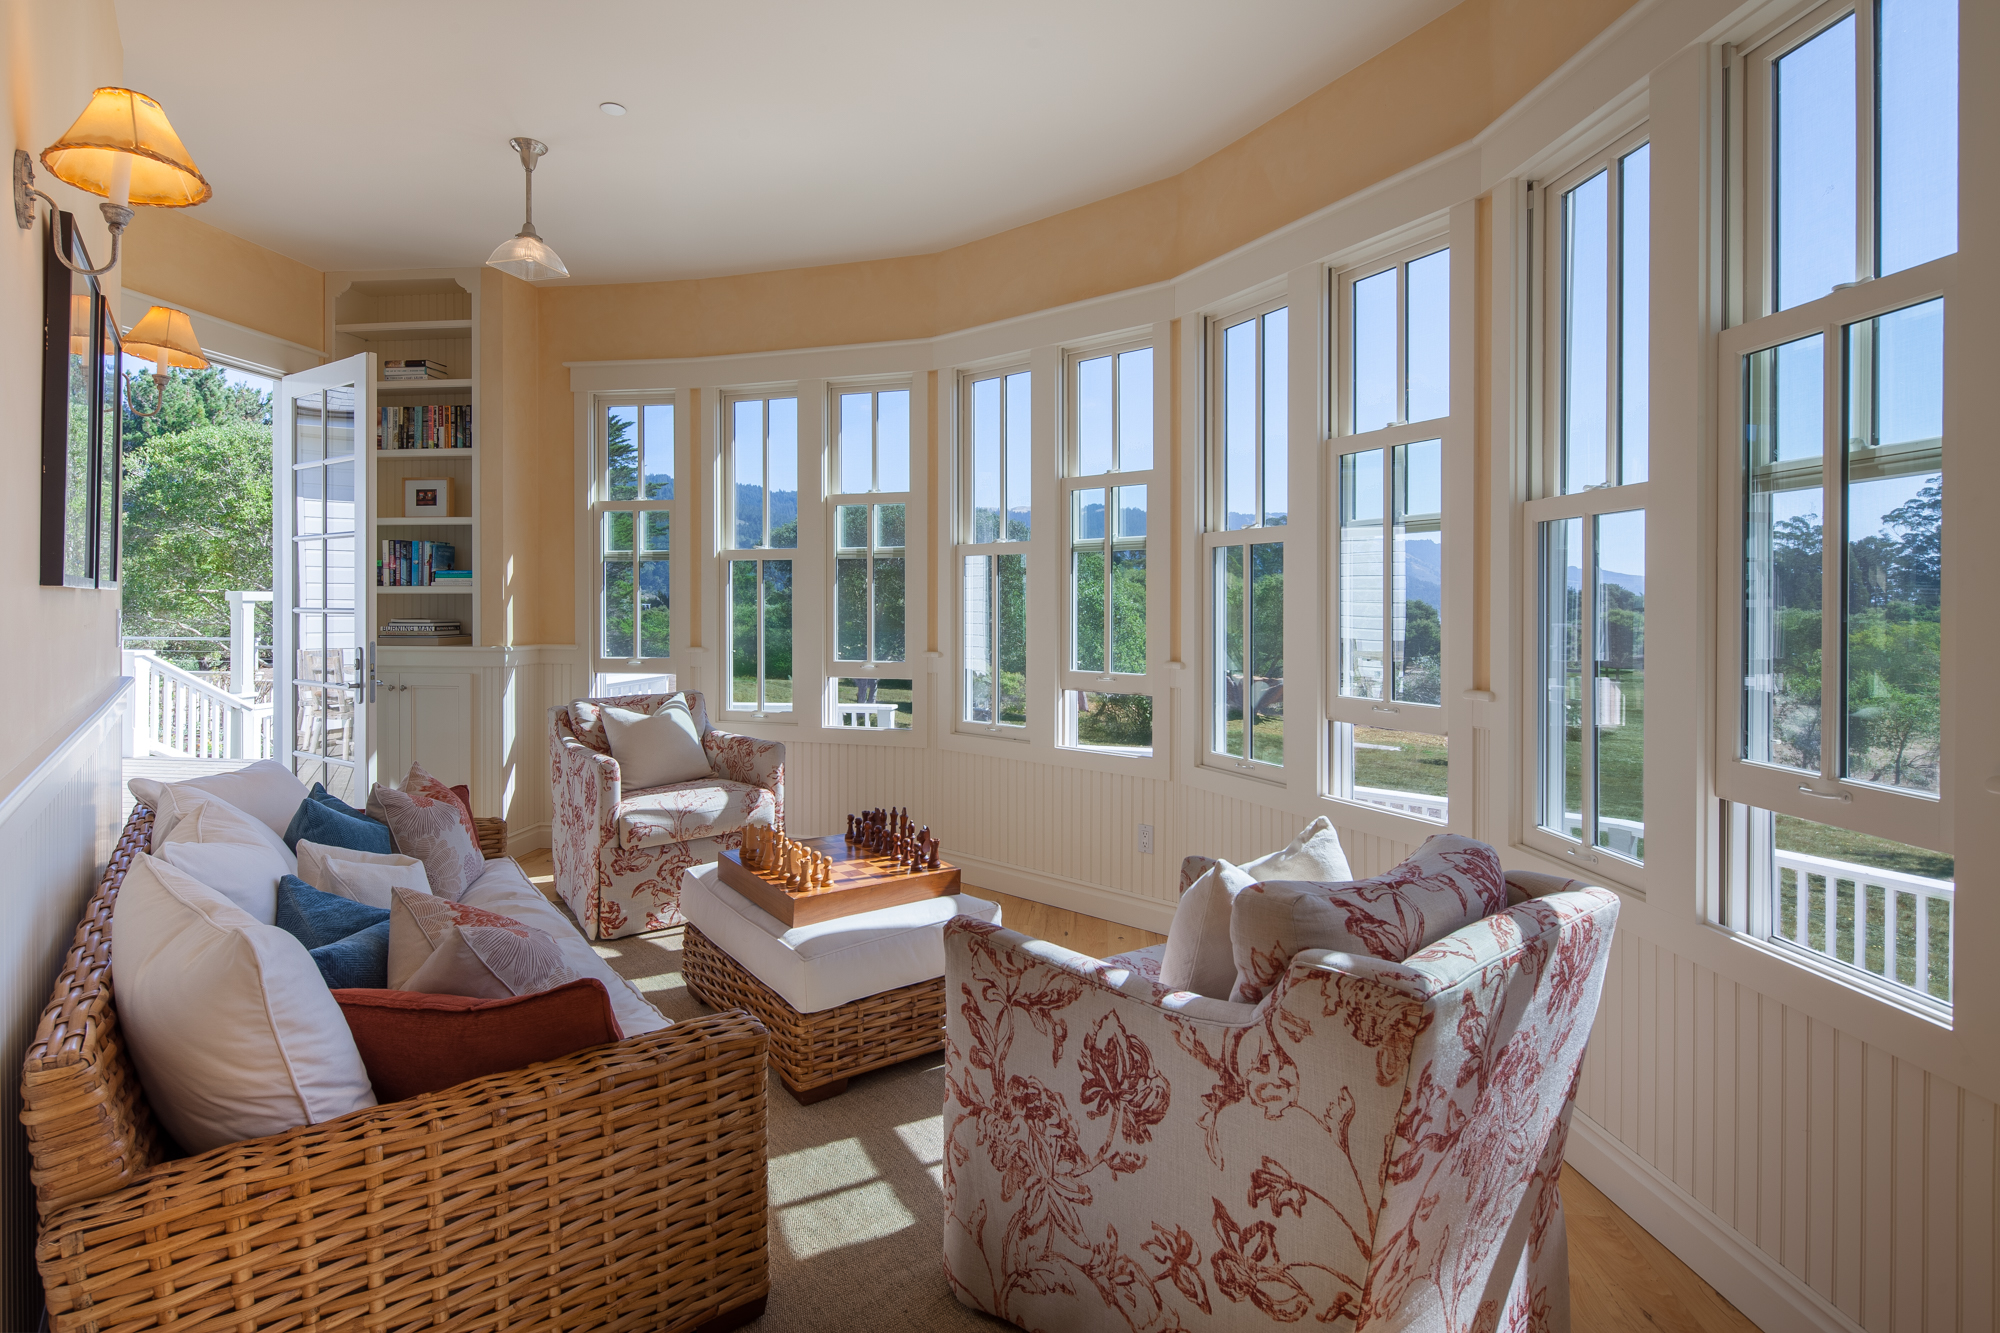 Blue apron niman ranch - This Home Will Make You Want To Move To Bolinas